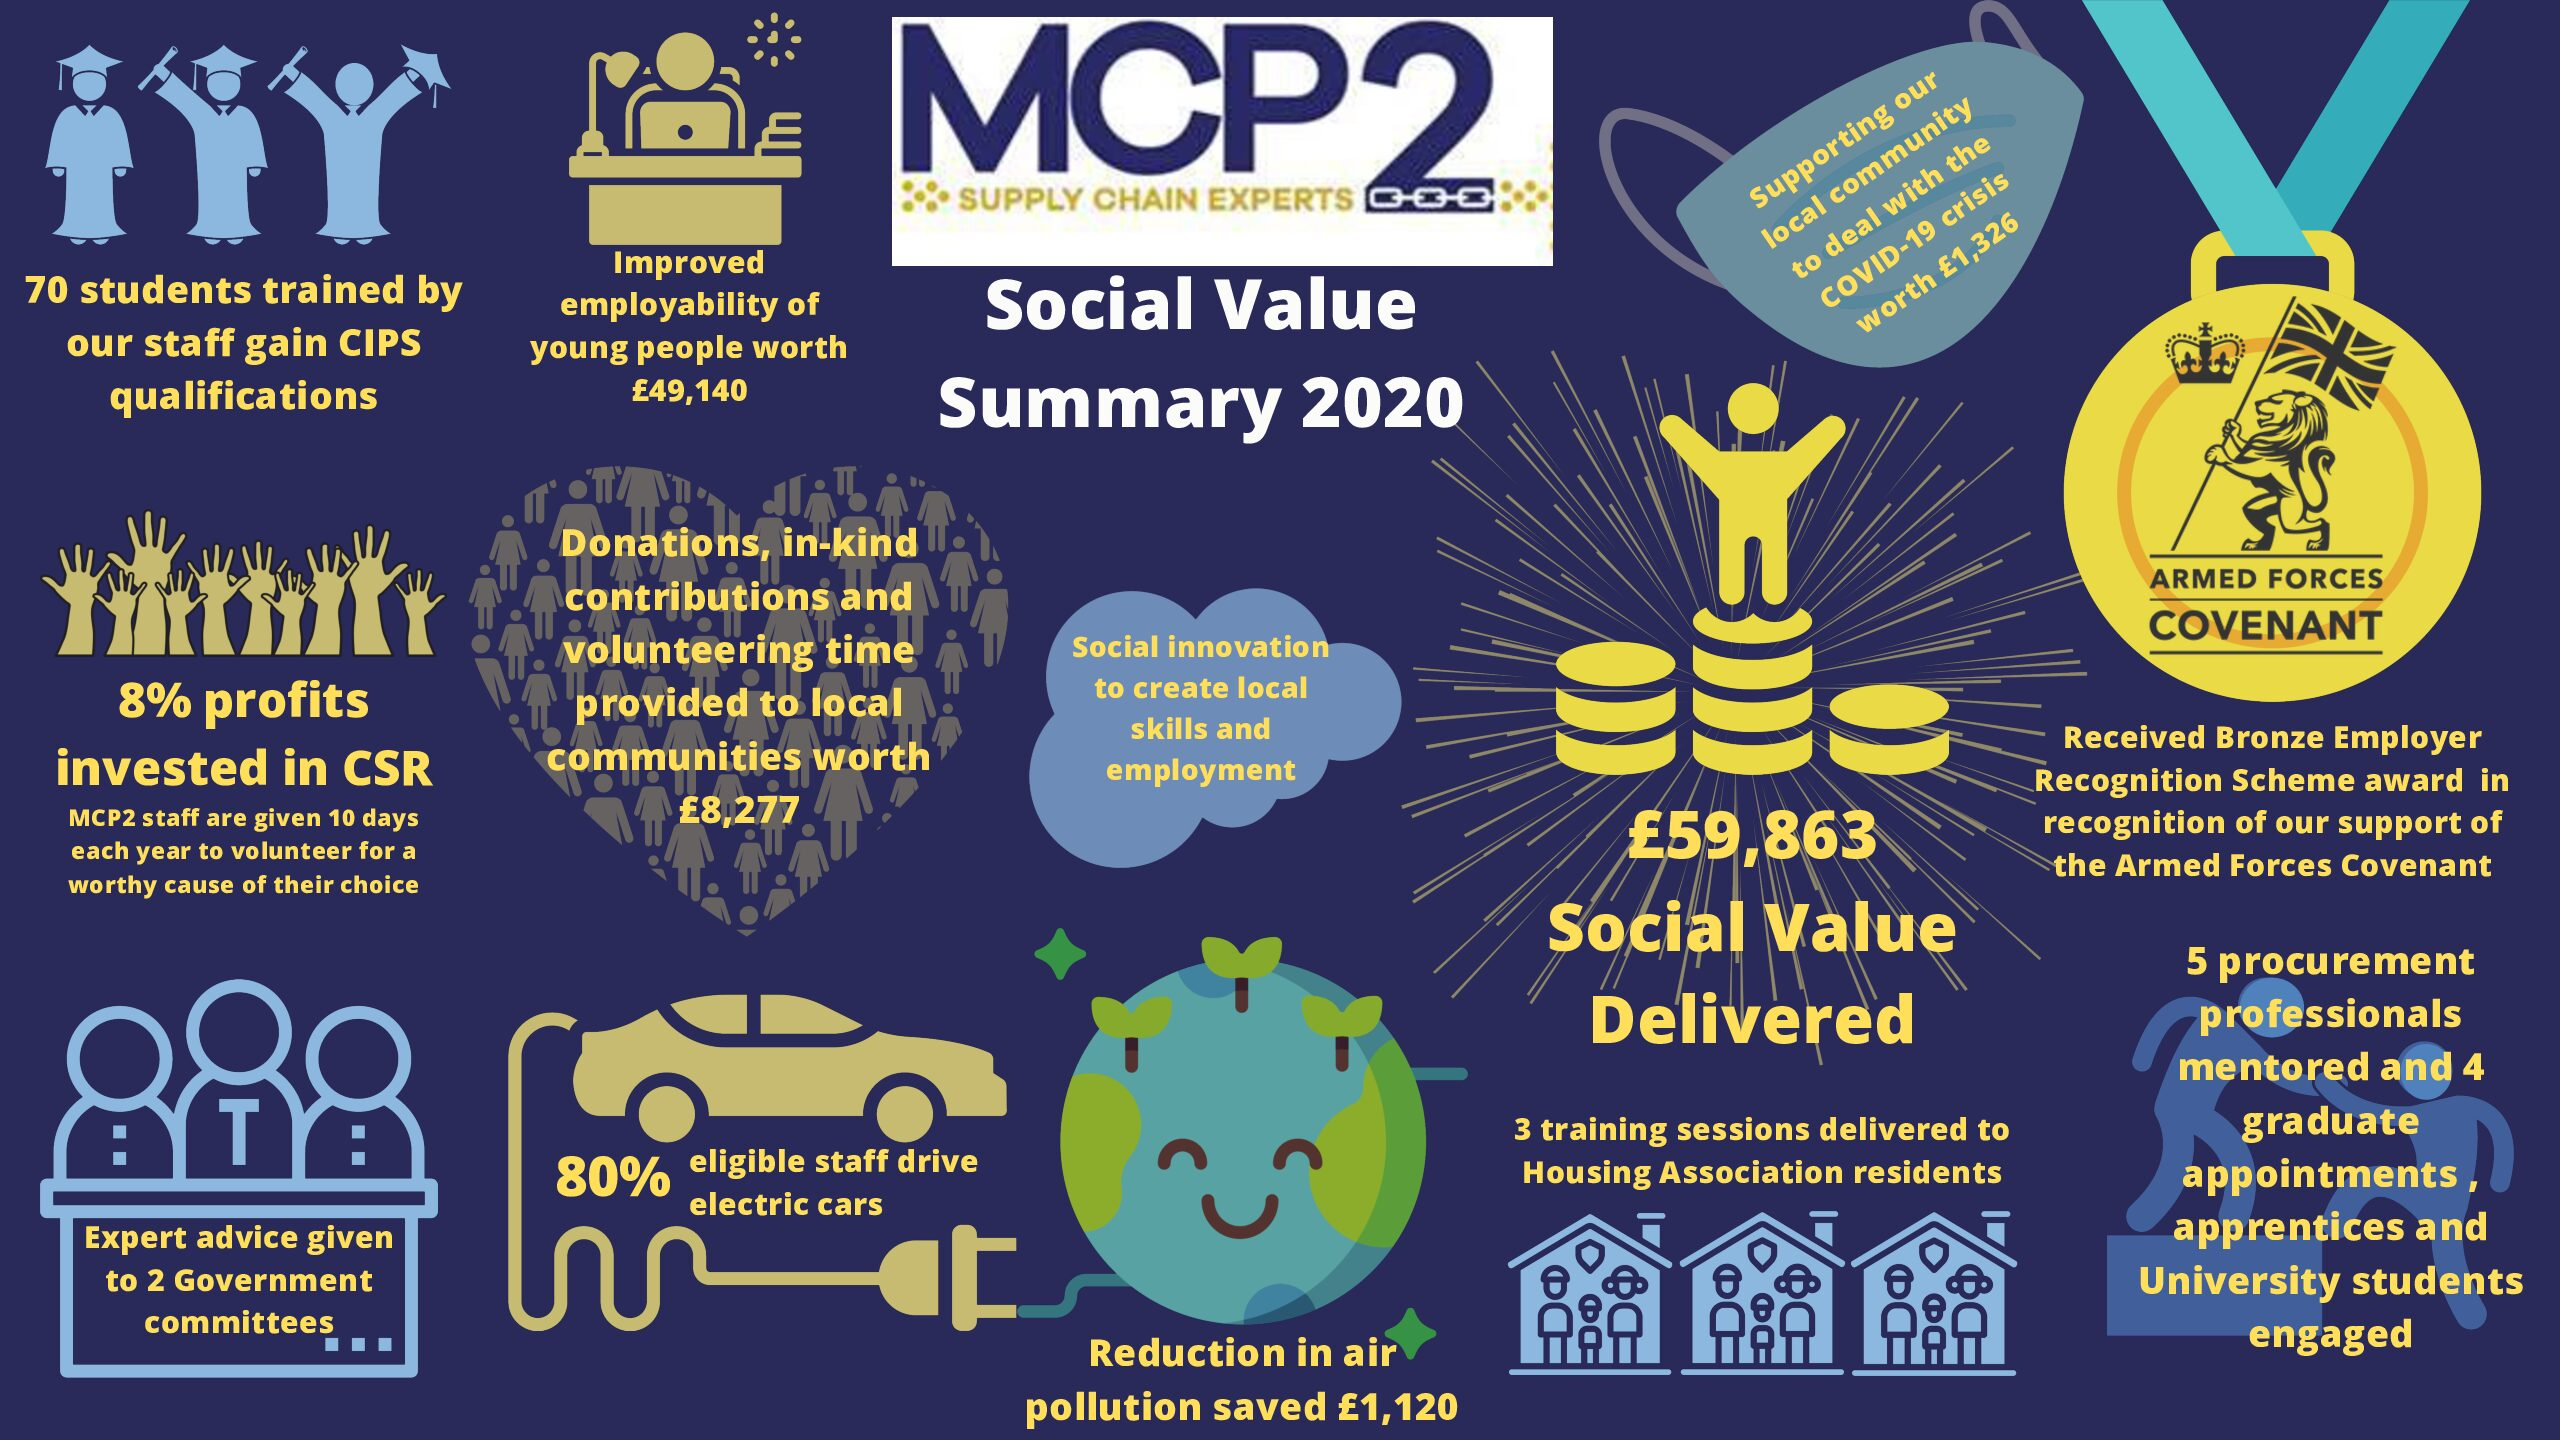 MCP2 Highly Commended in the SME Category of the National Social Value Awards 2021